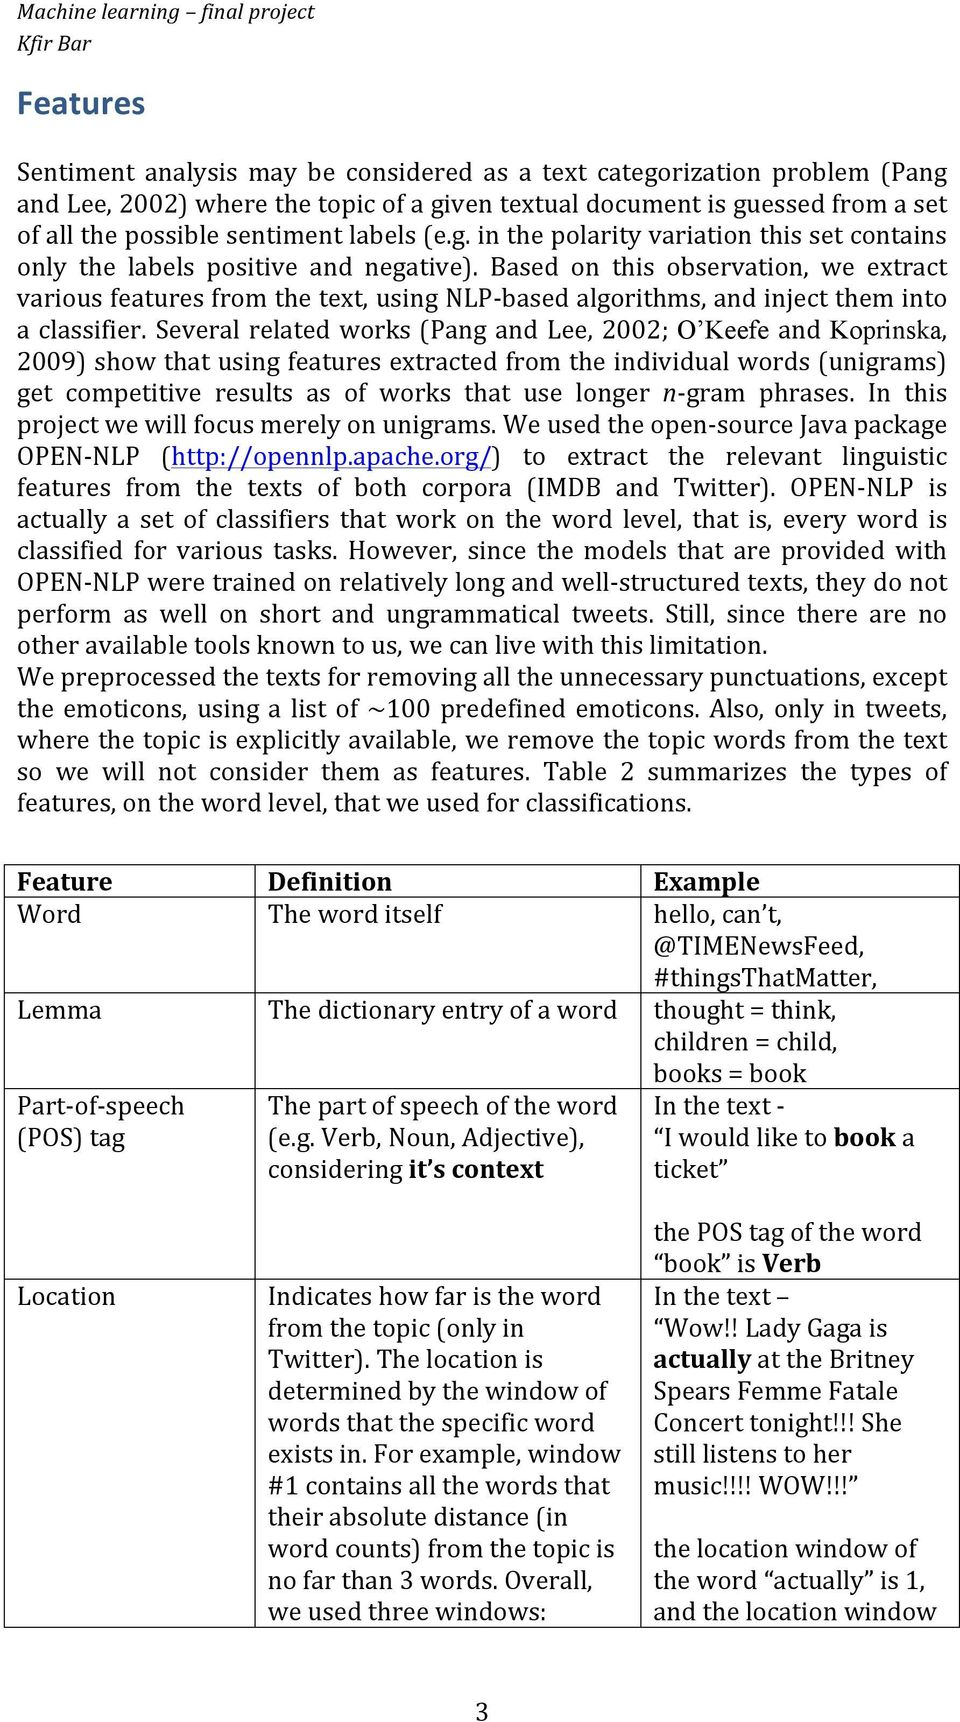 Several related works (Pang and Lee, 2002; O Keefe and Koprinska, 2009) show that using features extracted from the individual words (unigrams) get competitive results as of works that use longer n-